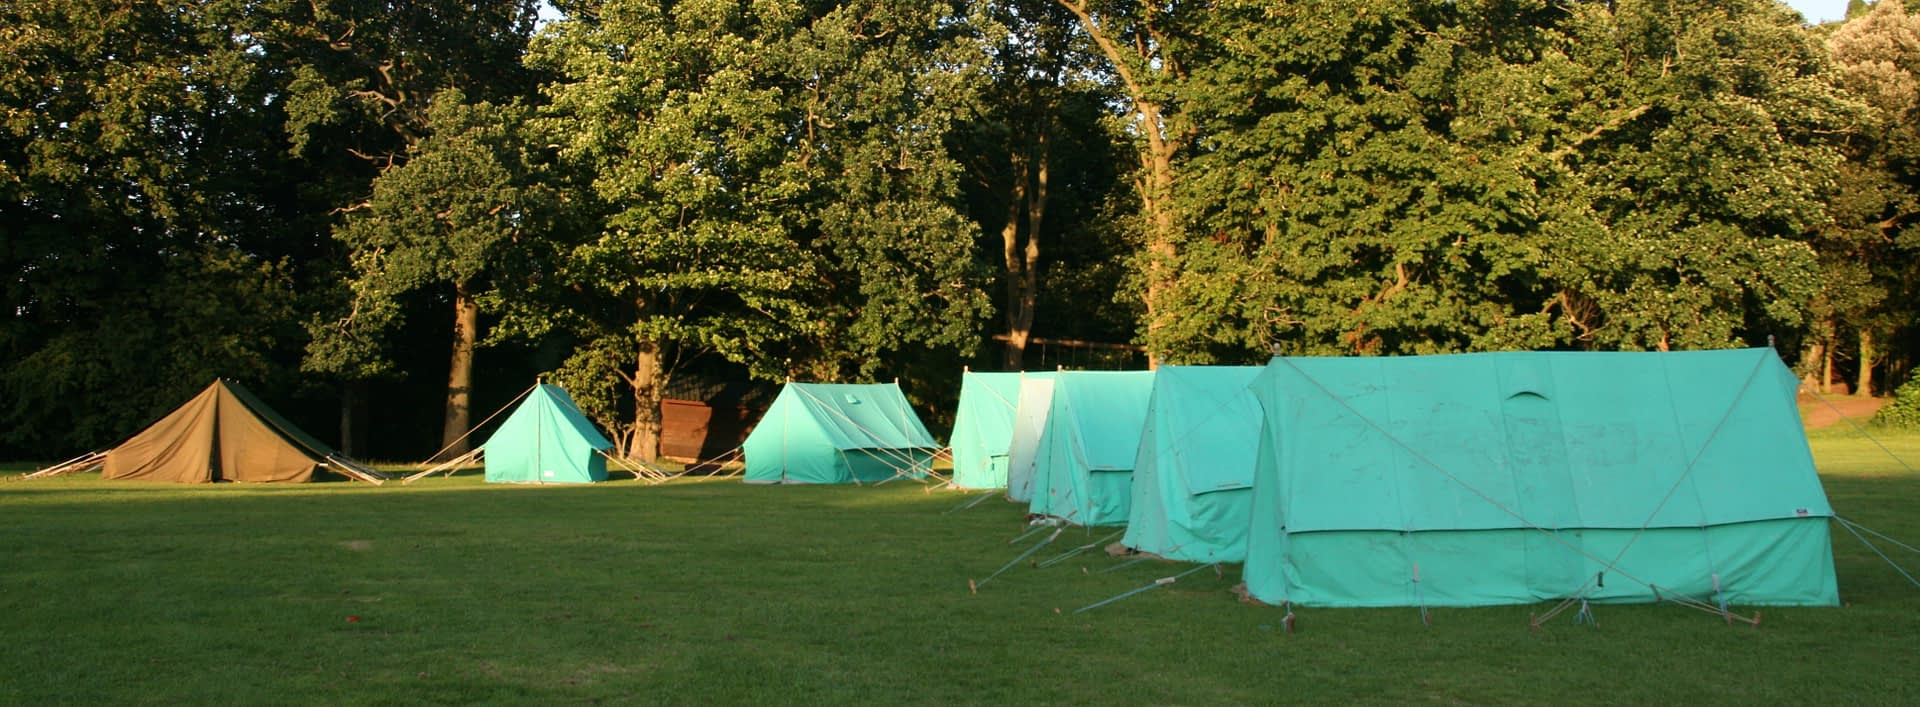 Traditional tents at Bonaly